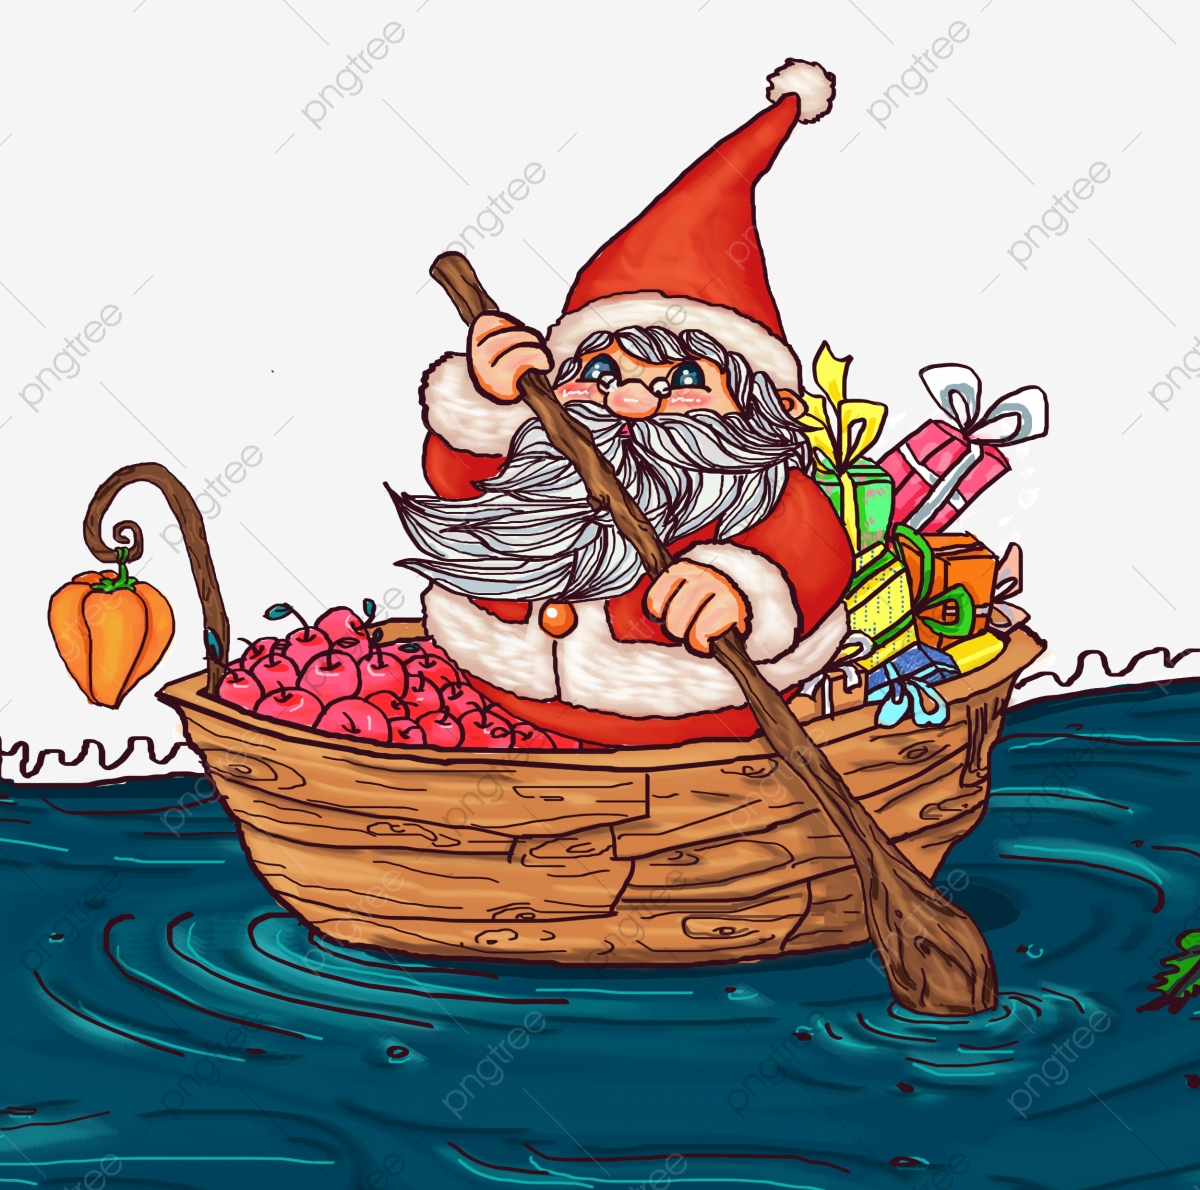 Christmas Christmas Santa Claus Boating, Paddle, Santa.